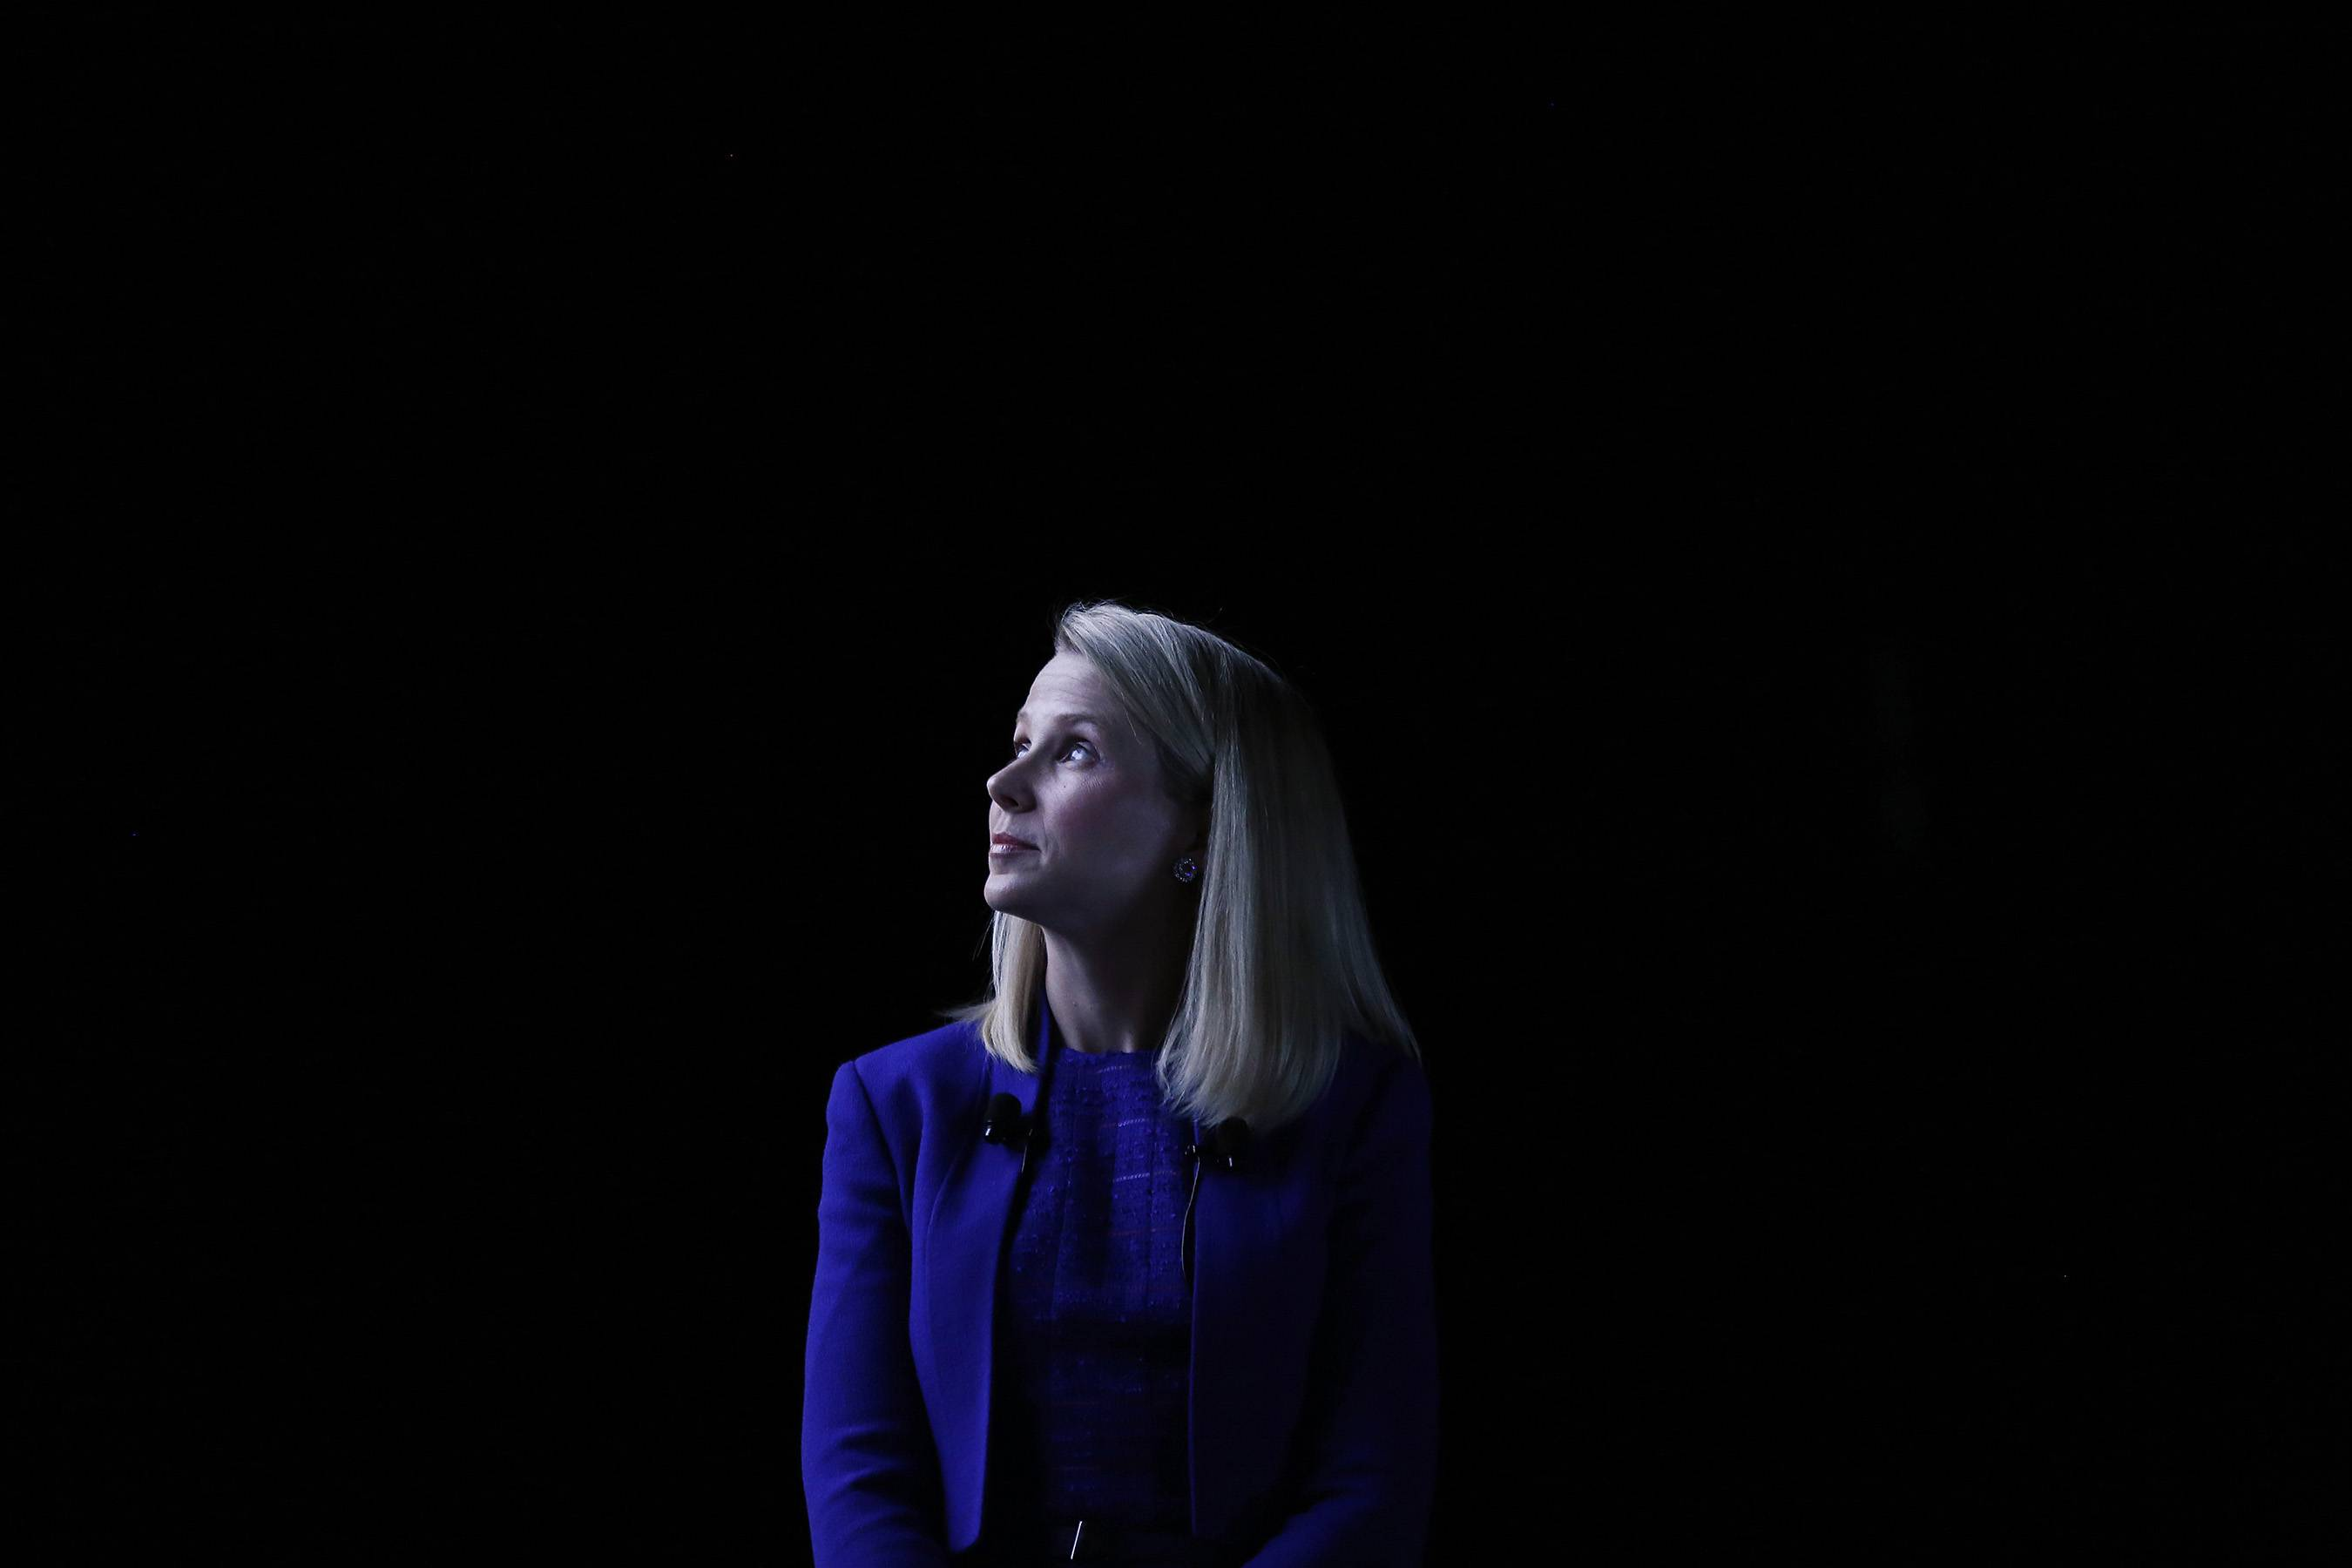 Marissa Mayer, chief executive officer of Yahoo! Inc., looks on at the Cannes Lions International Festival Of Creativity in Cannes, France, on Tuesday, June 17, 2014.